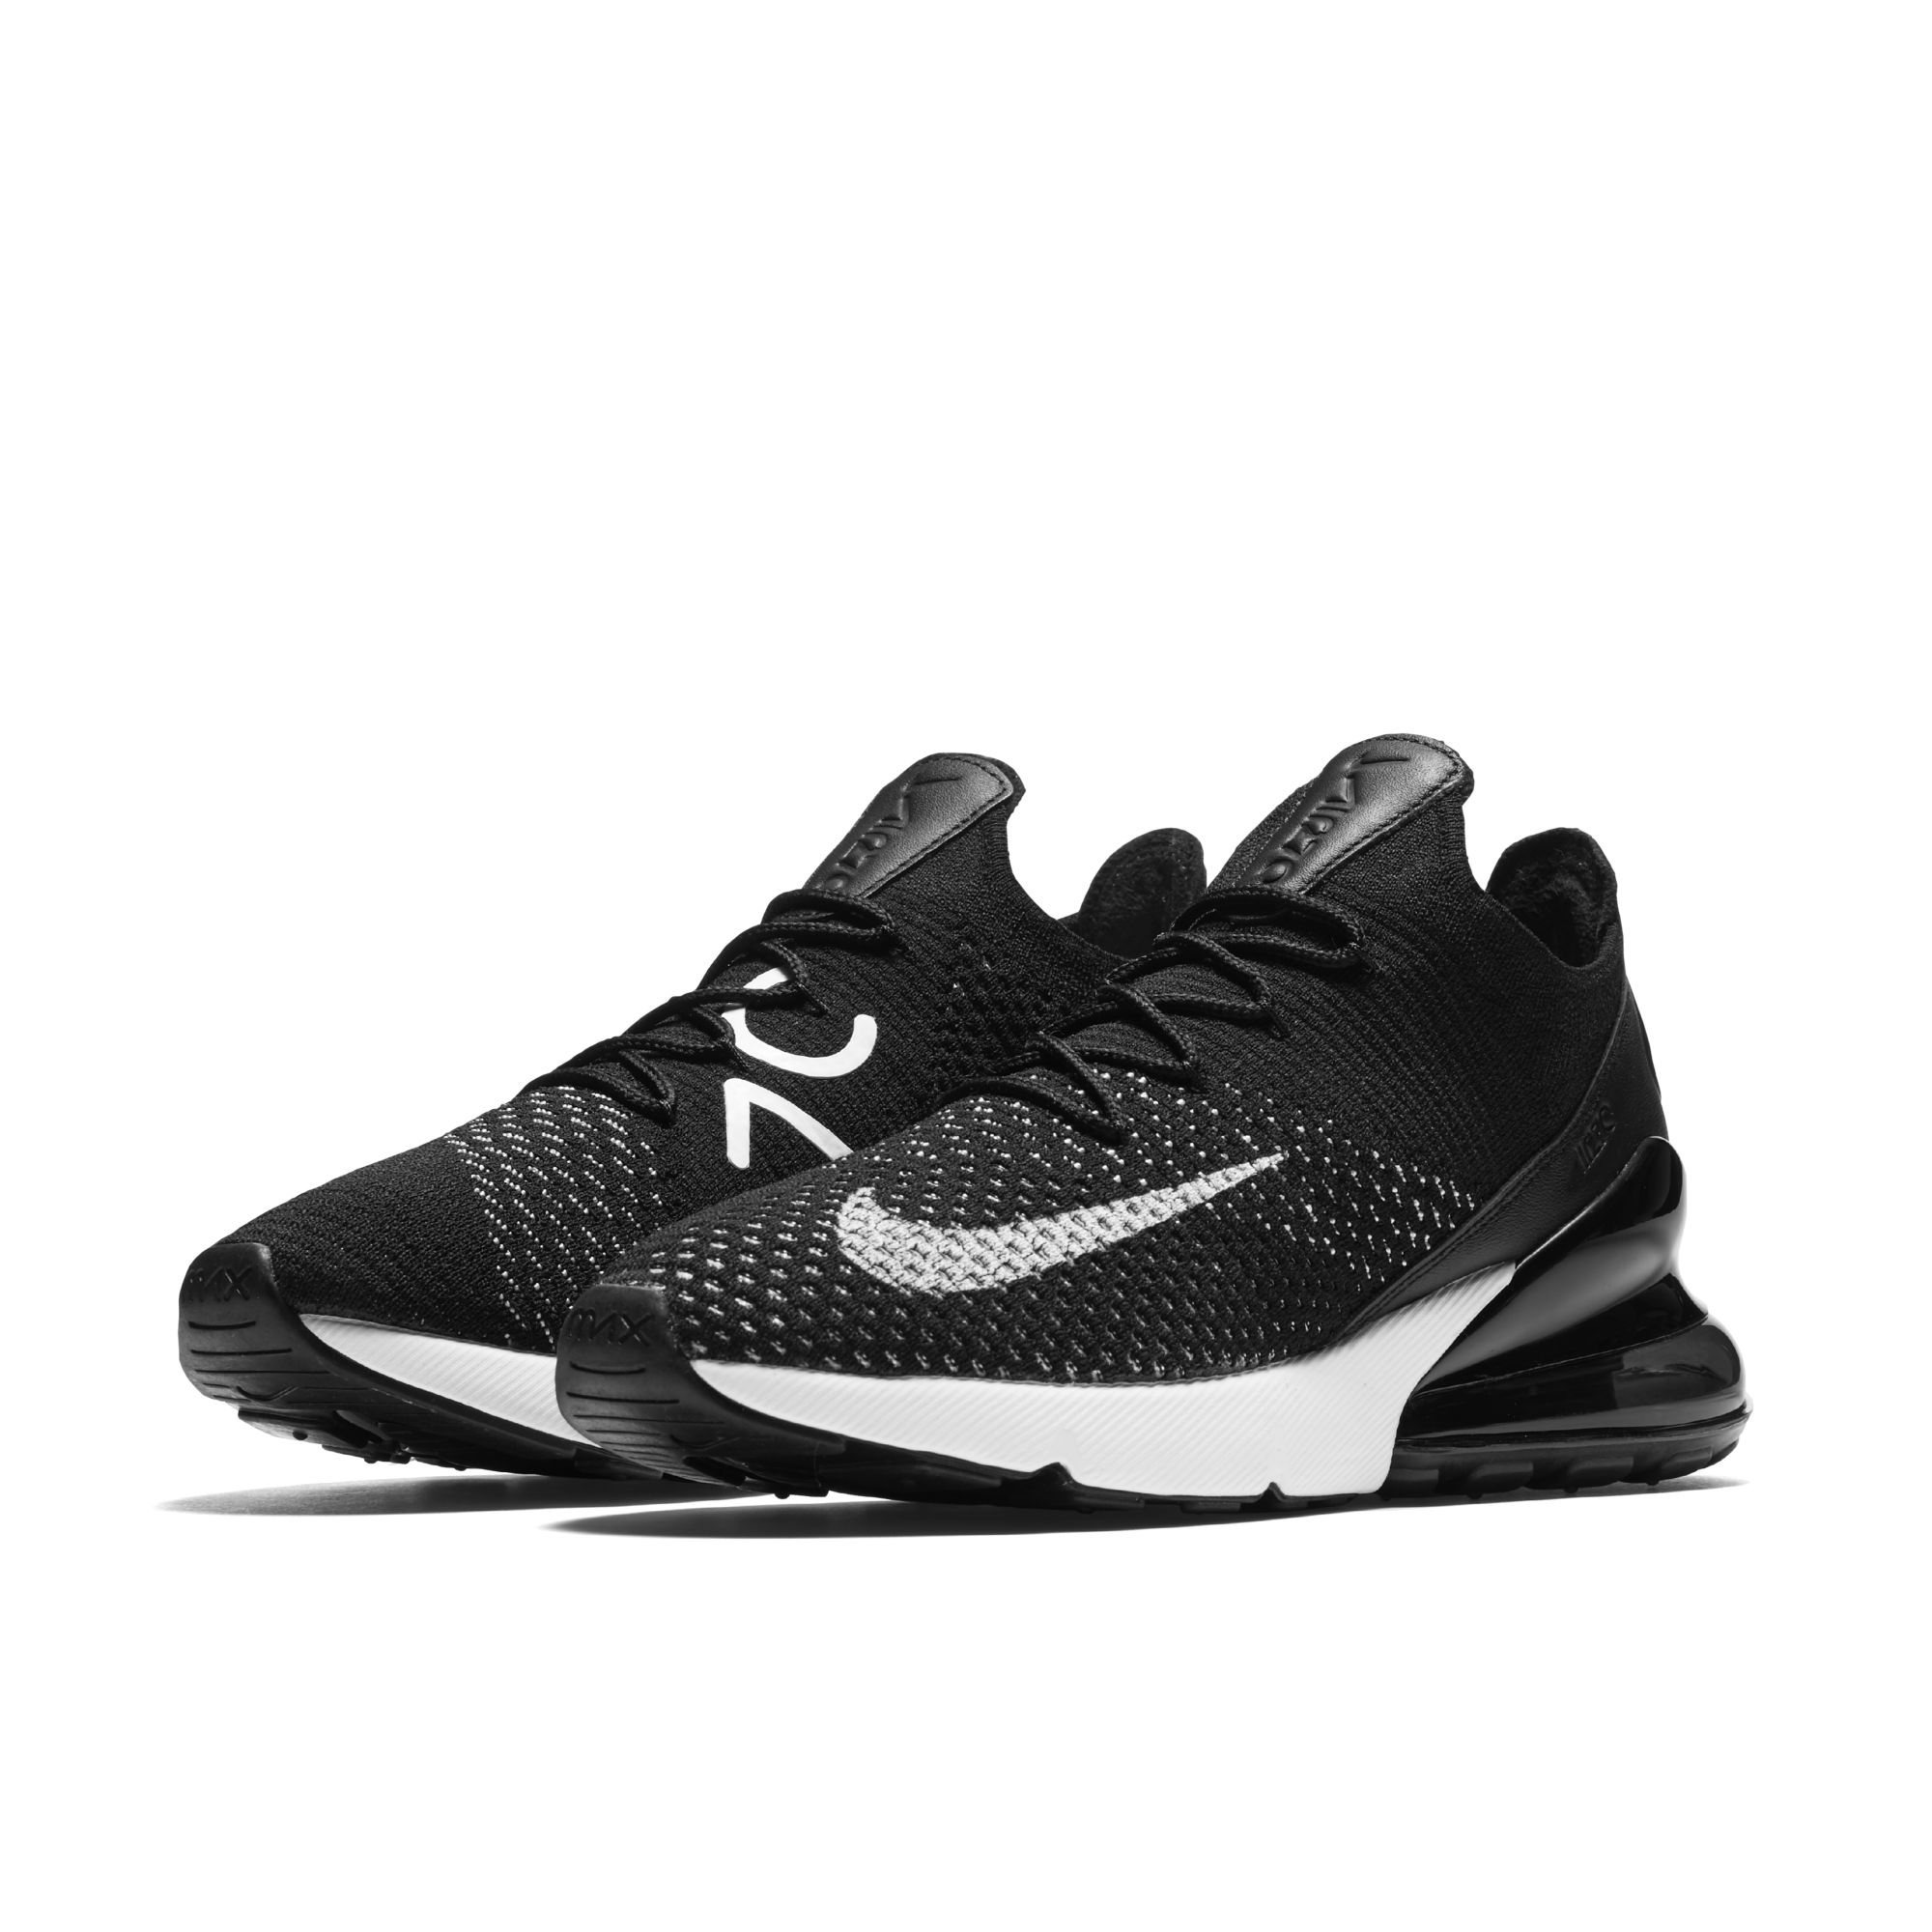 c5abadc0bc nike air max 270 flyknit black white womens - WearTesters